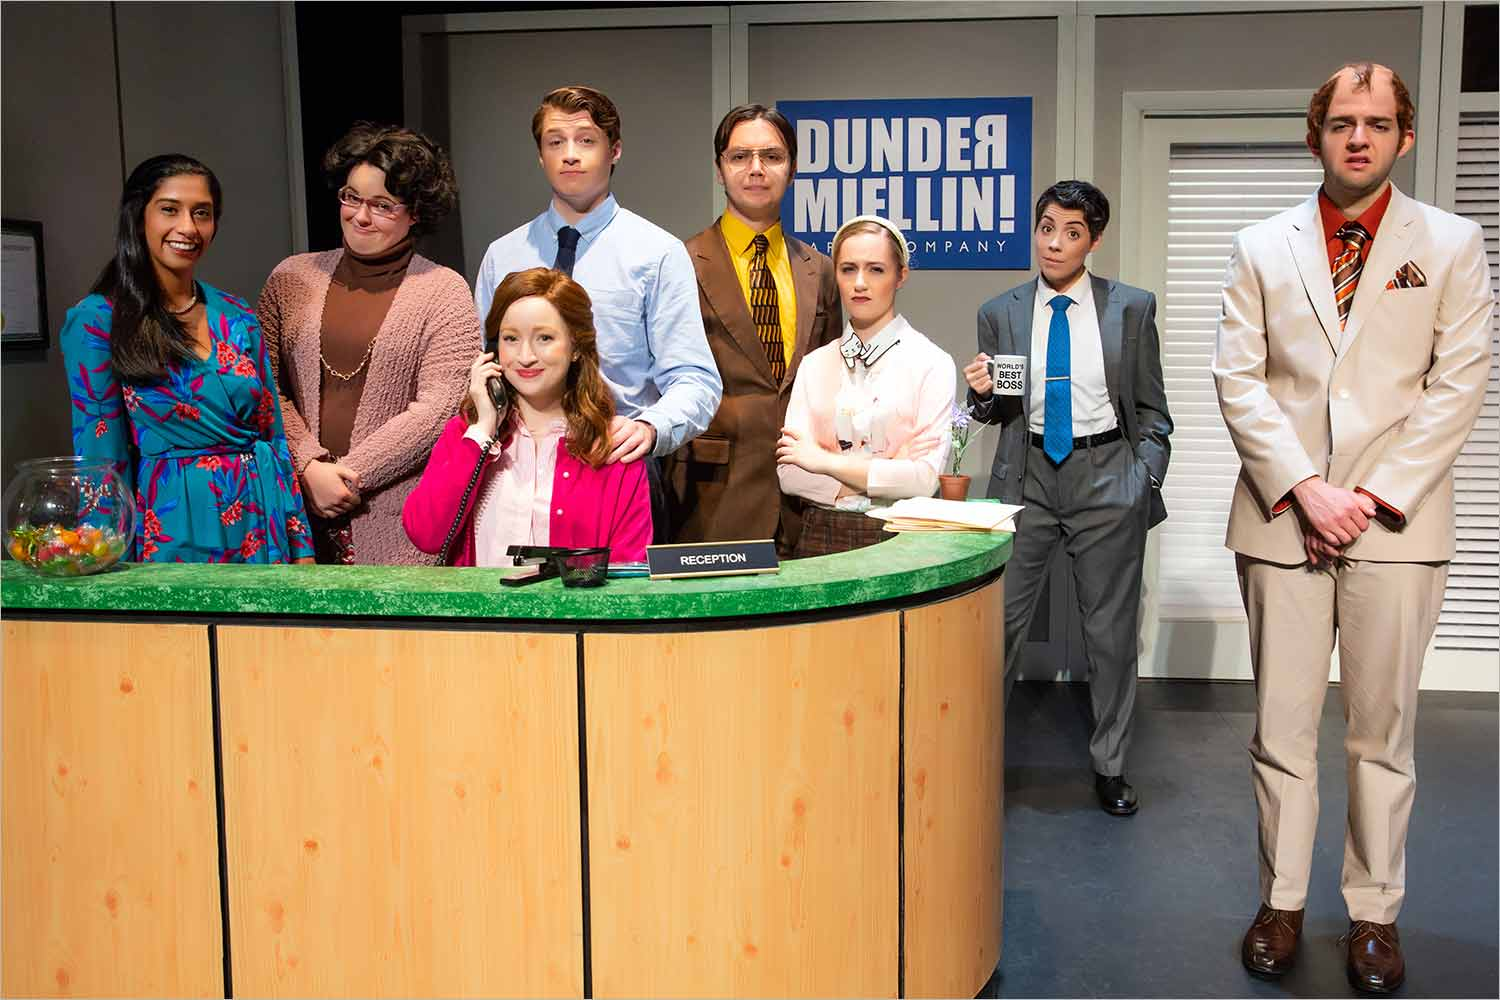 The cast of The Office: A Musical Parody